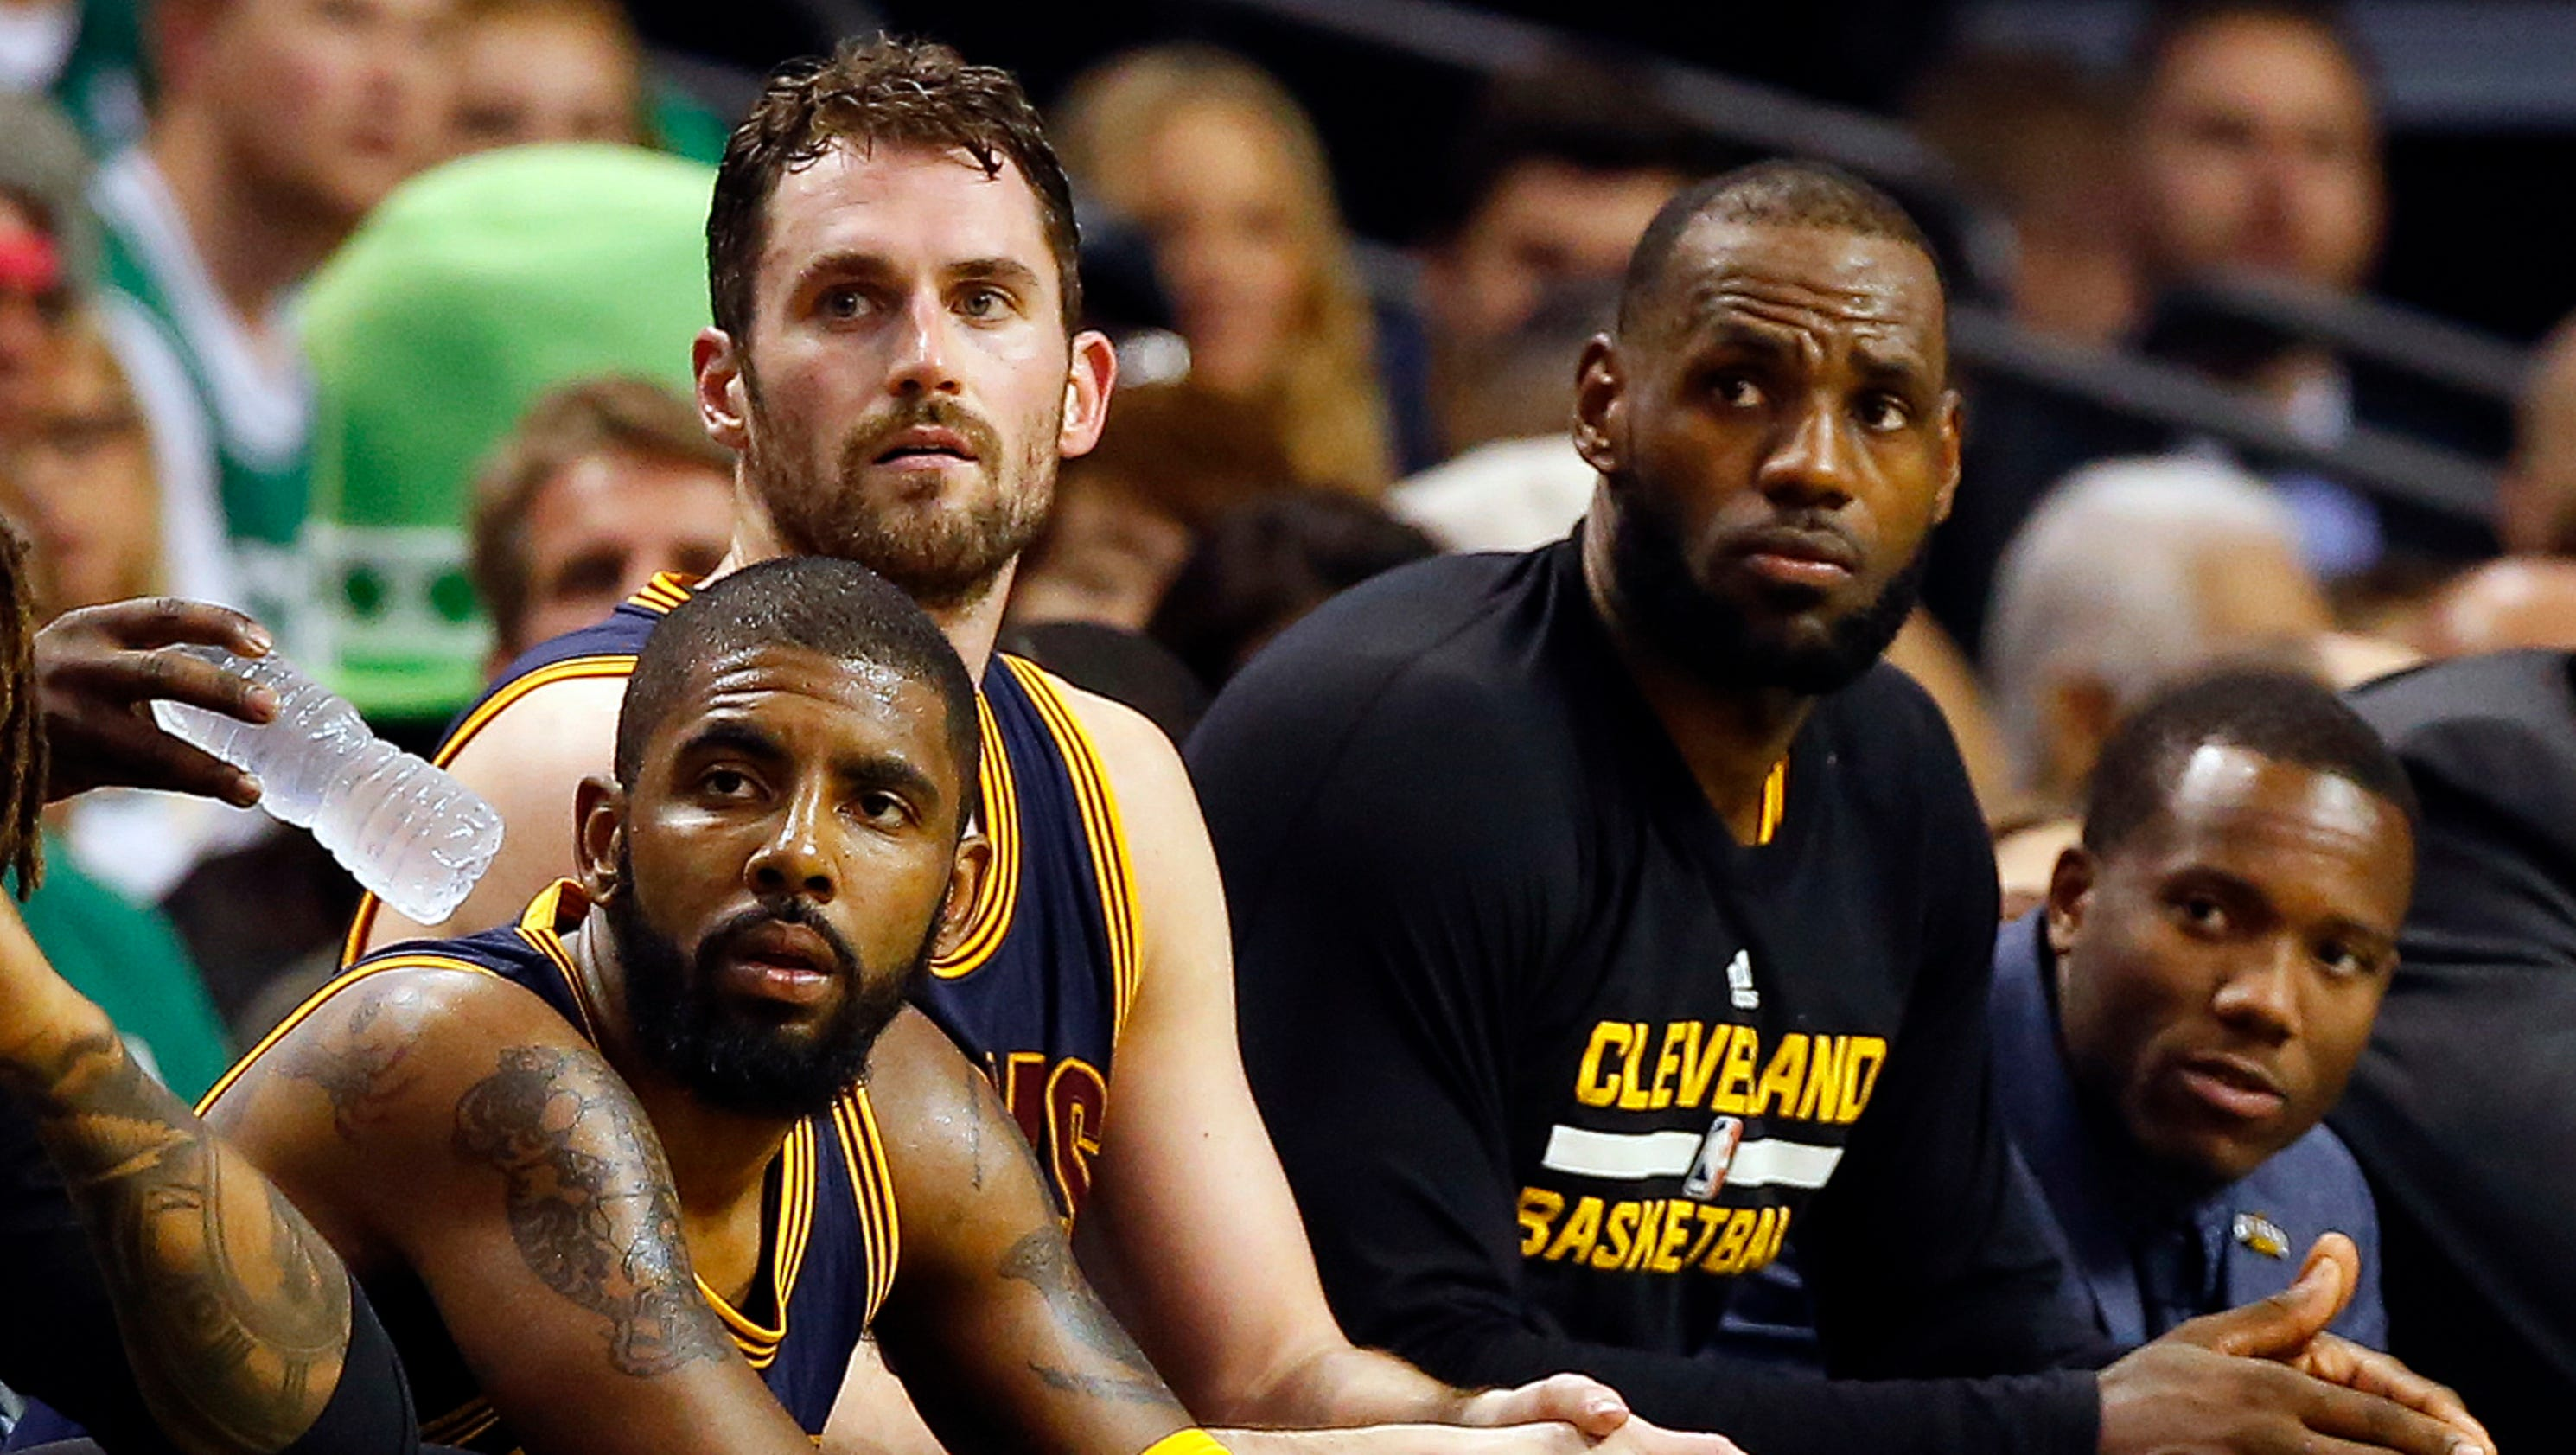 Nba-_playoffs-cleveland_cavaliers_at_boston_ce